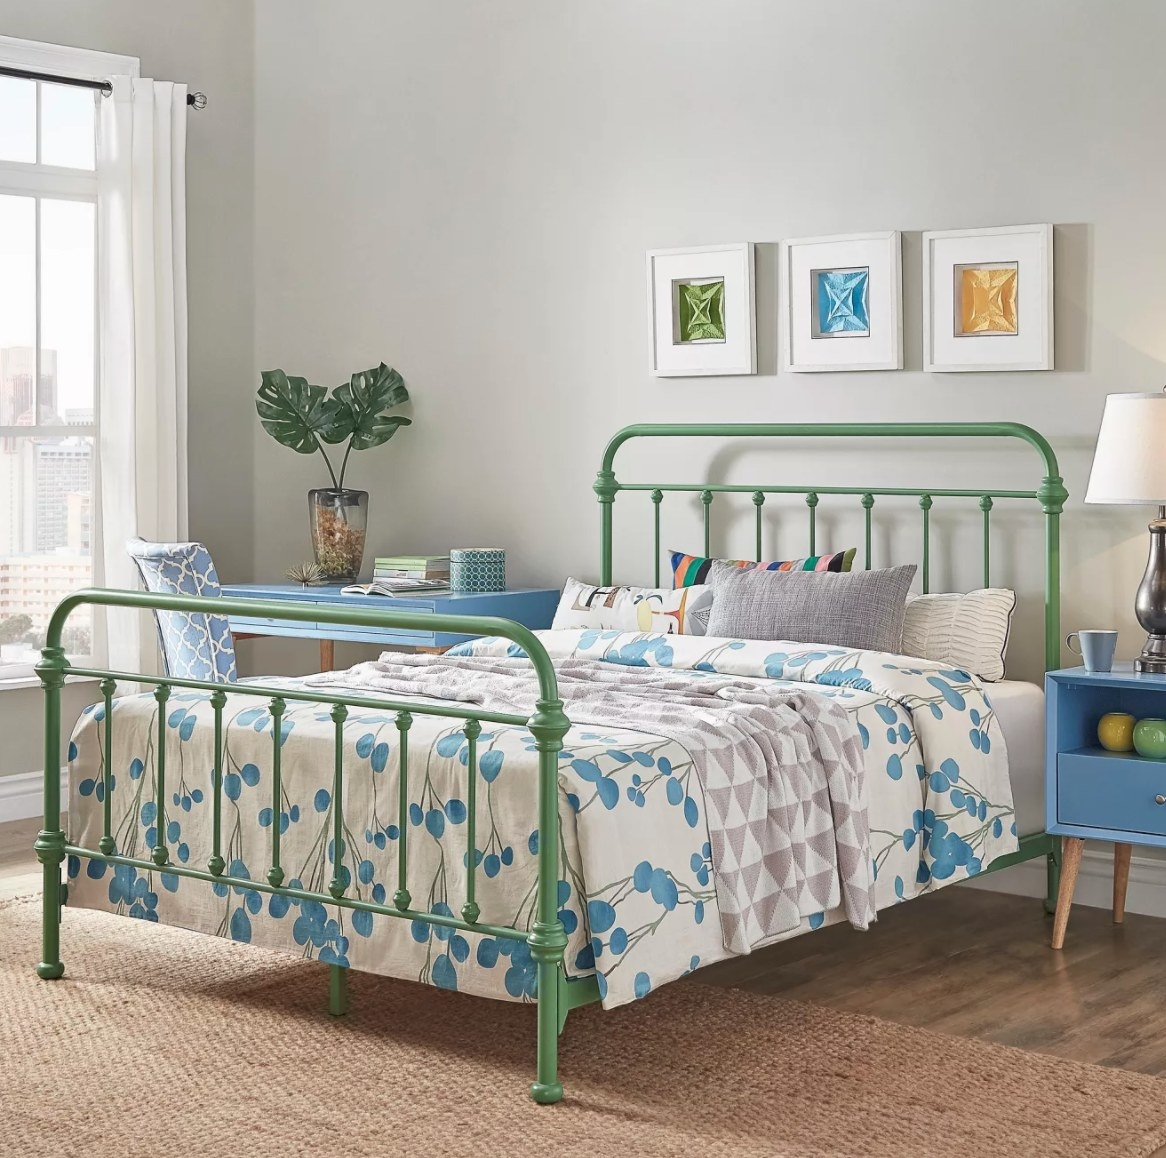 The green metal bed